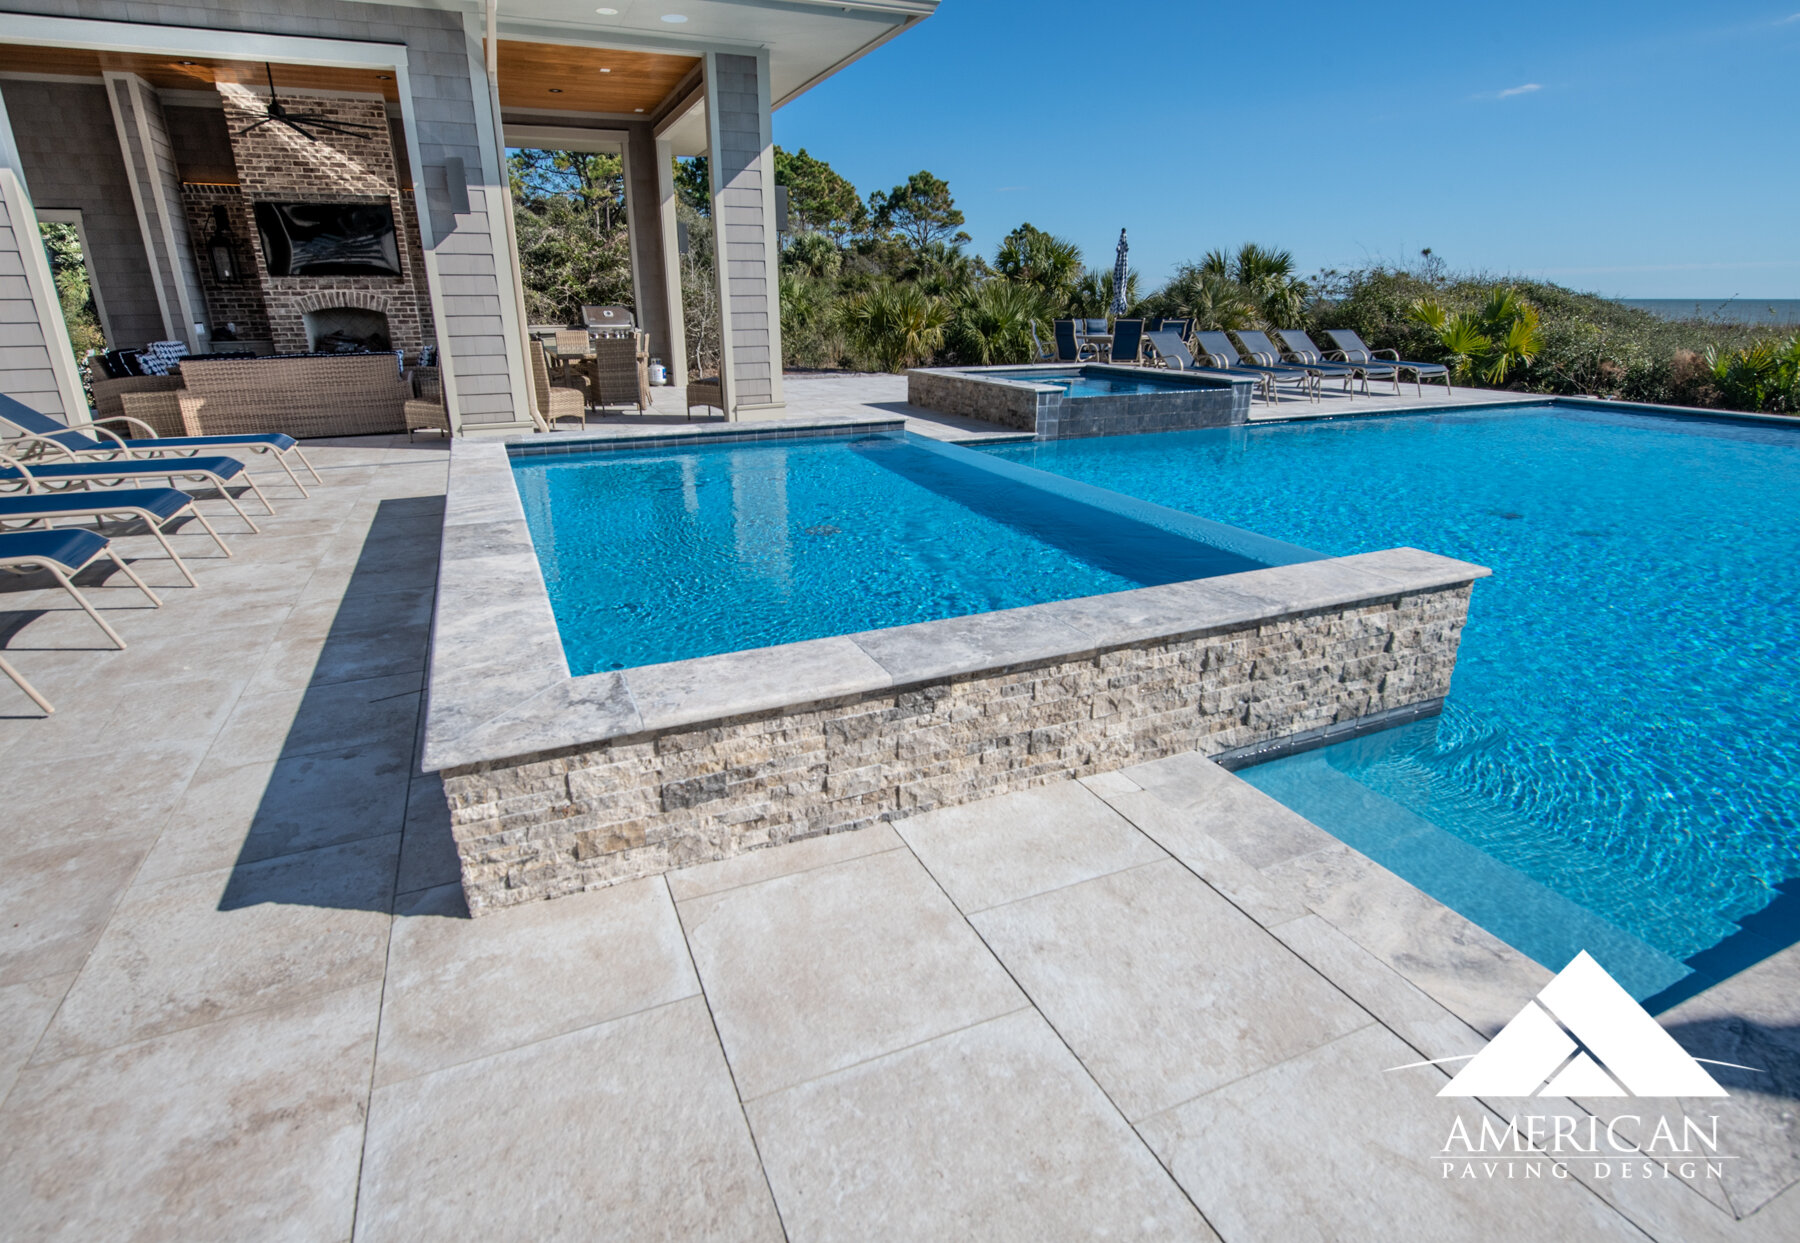 Swimming Pool Pavers American Paving Design